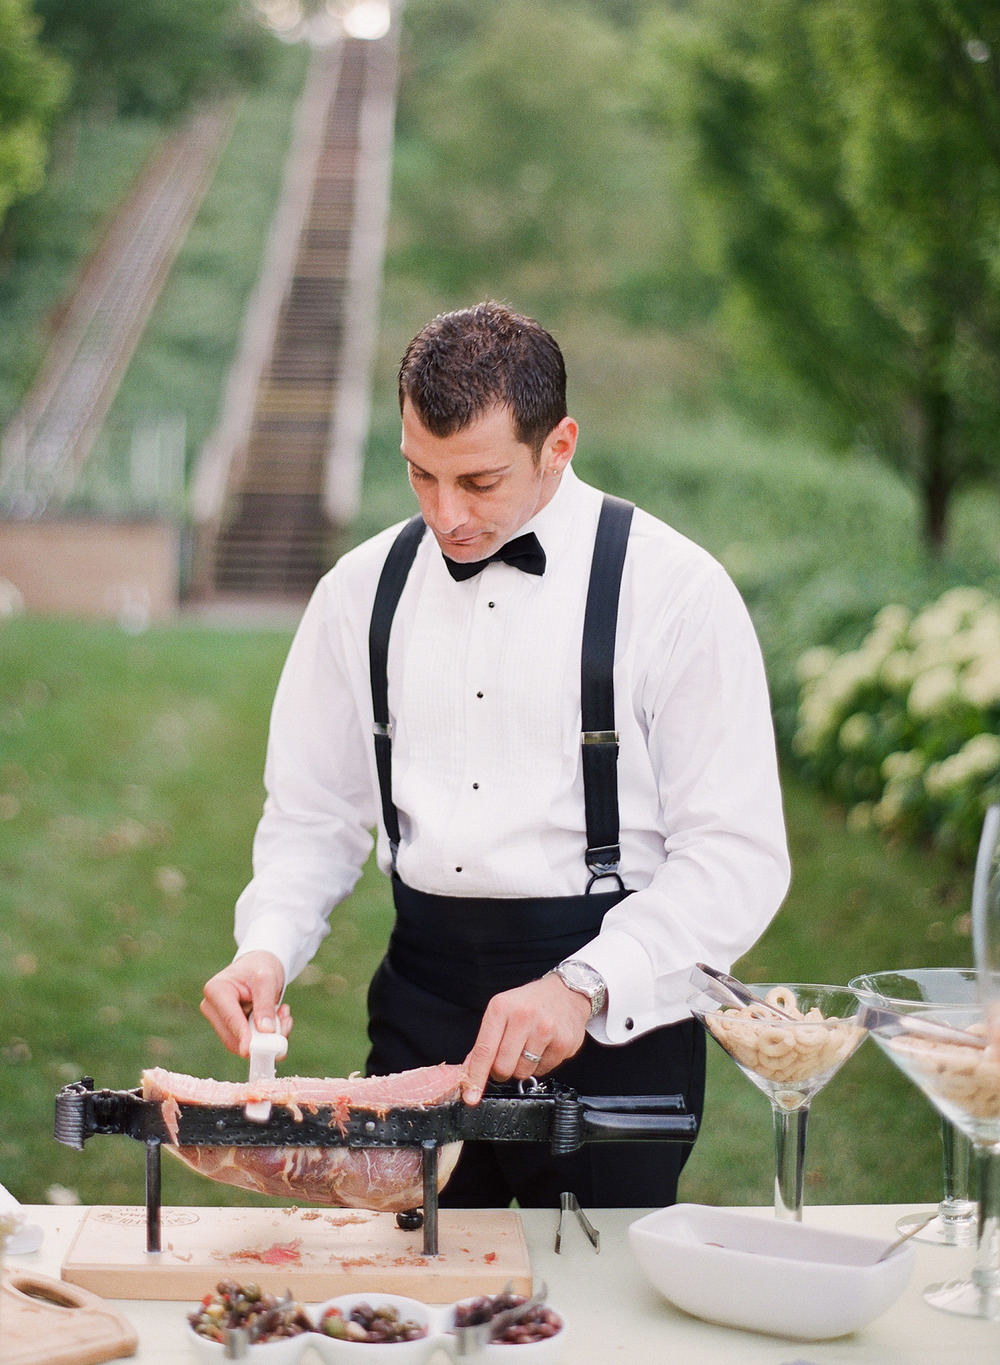 the groom cuts some prosciutto for the wedding day hors d'oeurves at the Italian wedding at the Villa Terrace, an Italian villa for weddings while Destination WEdding Photographer, Lexia Frank, photographs the wedding on film